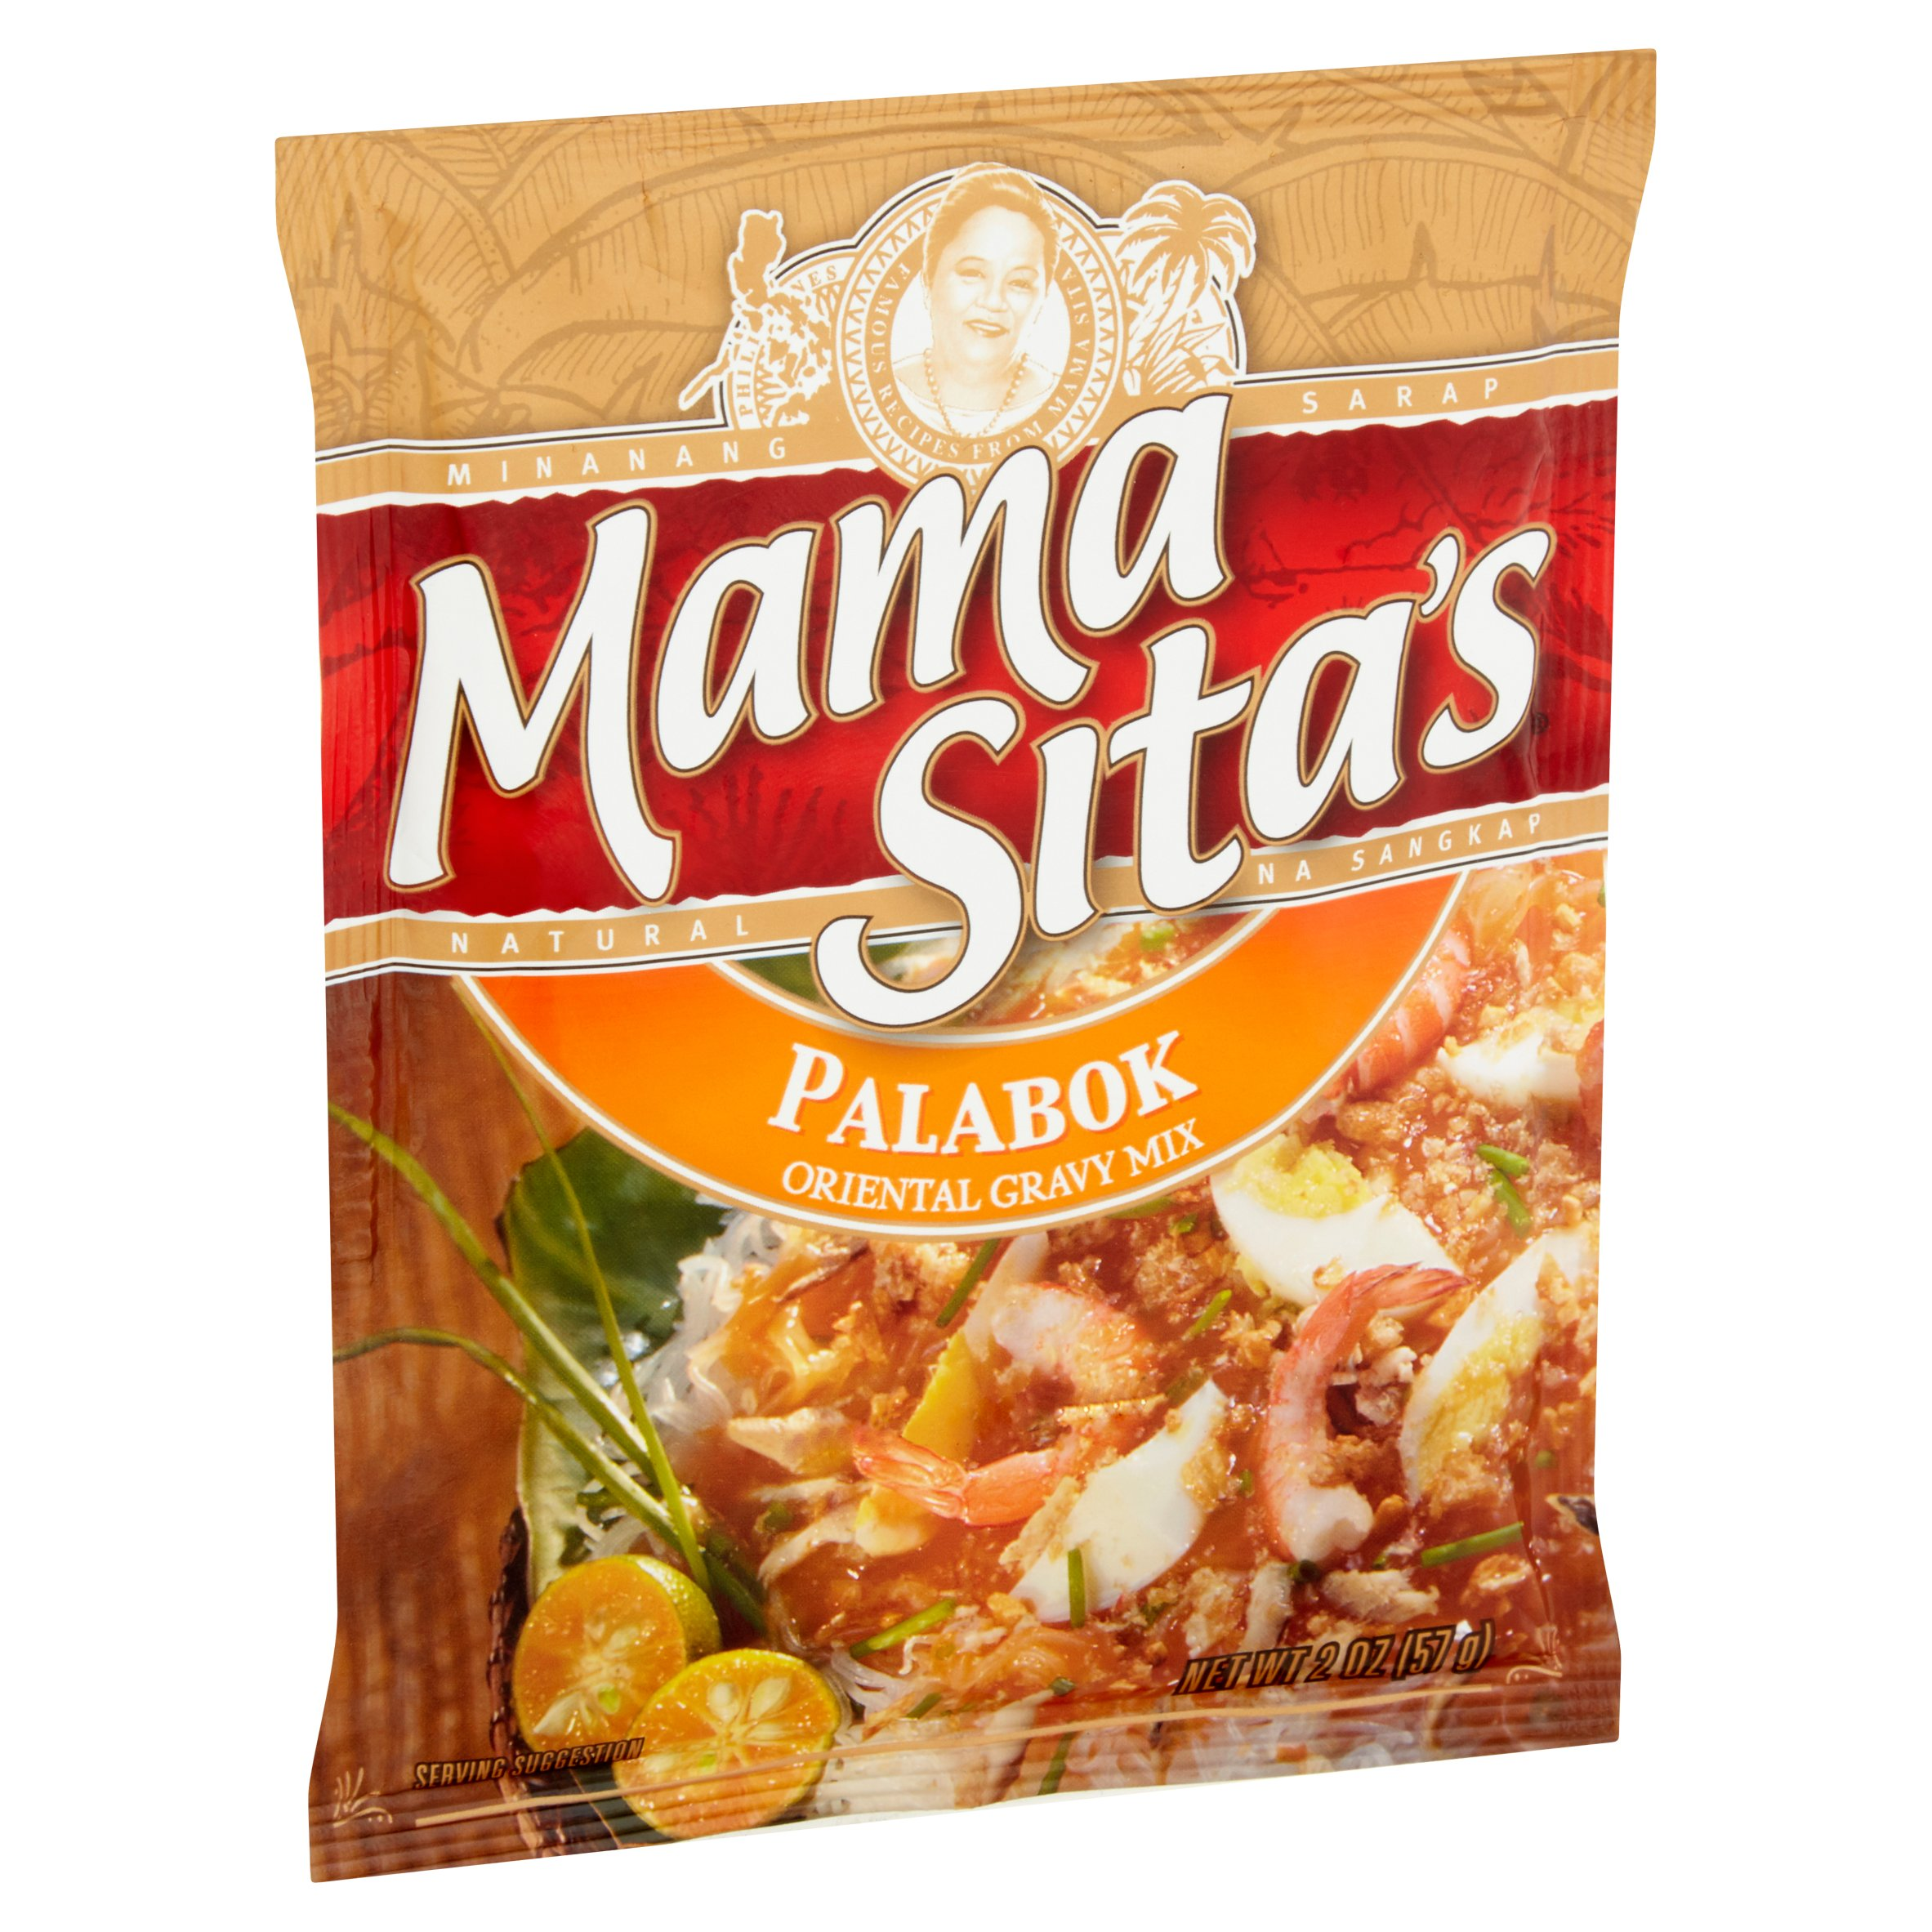 medium mama sitas palabok oriental gravy mix 2 oz wkZWQ0So9Y